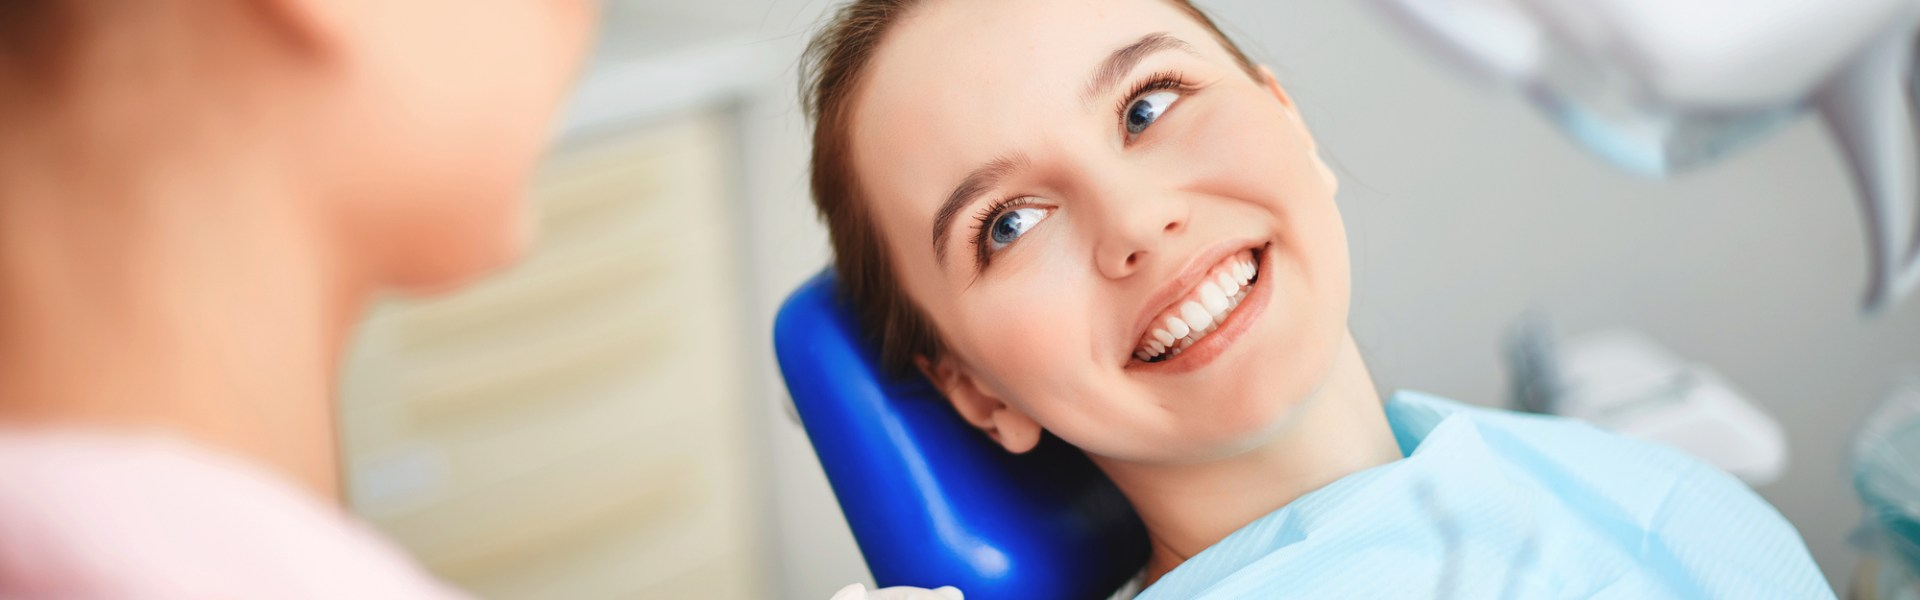 Create Brighter Smiles with Dental Care as a Priority